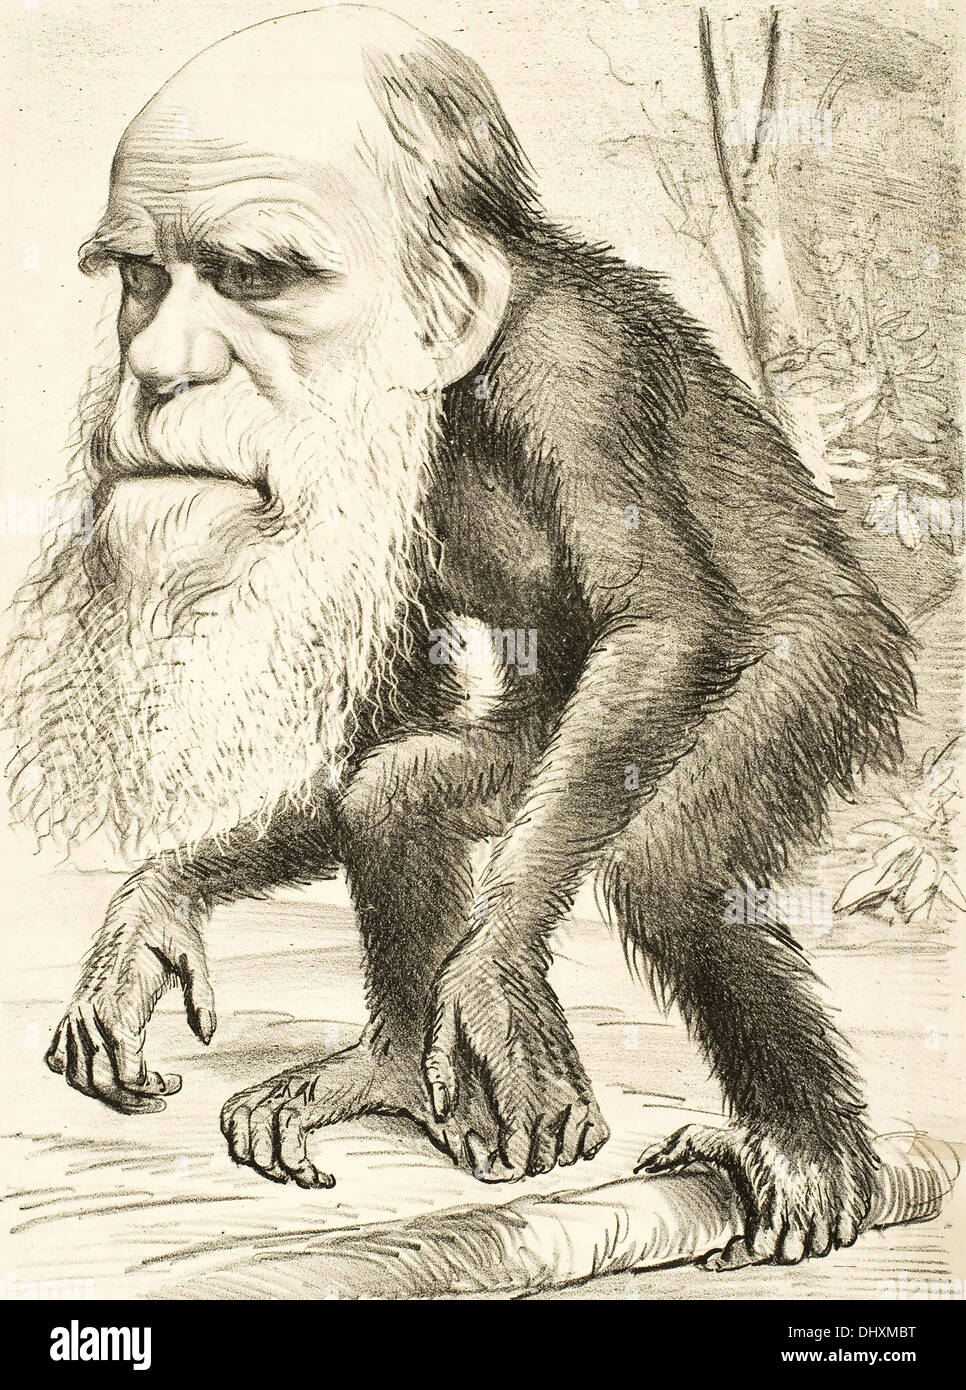 Caricature de Charles Darwin 1871 Photo Stock